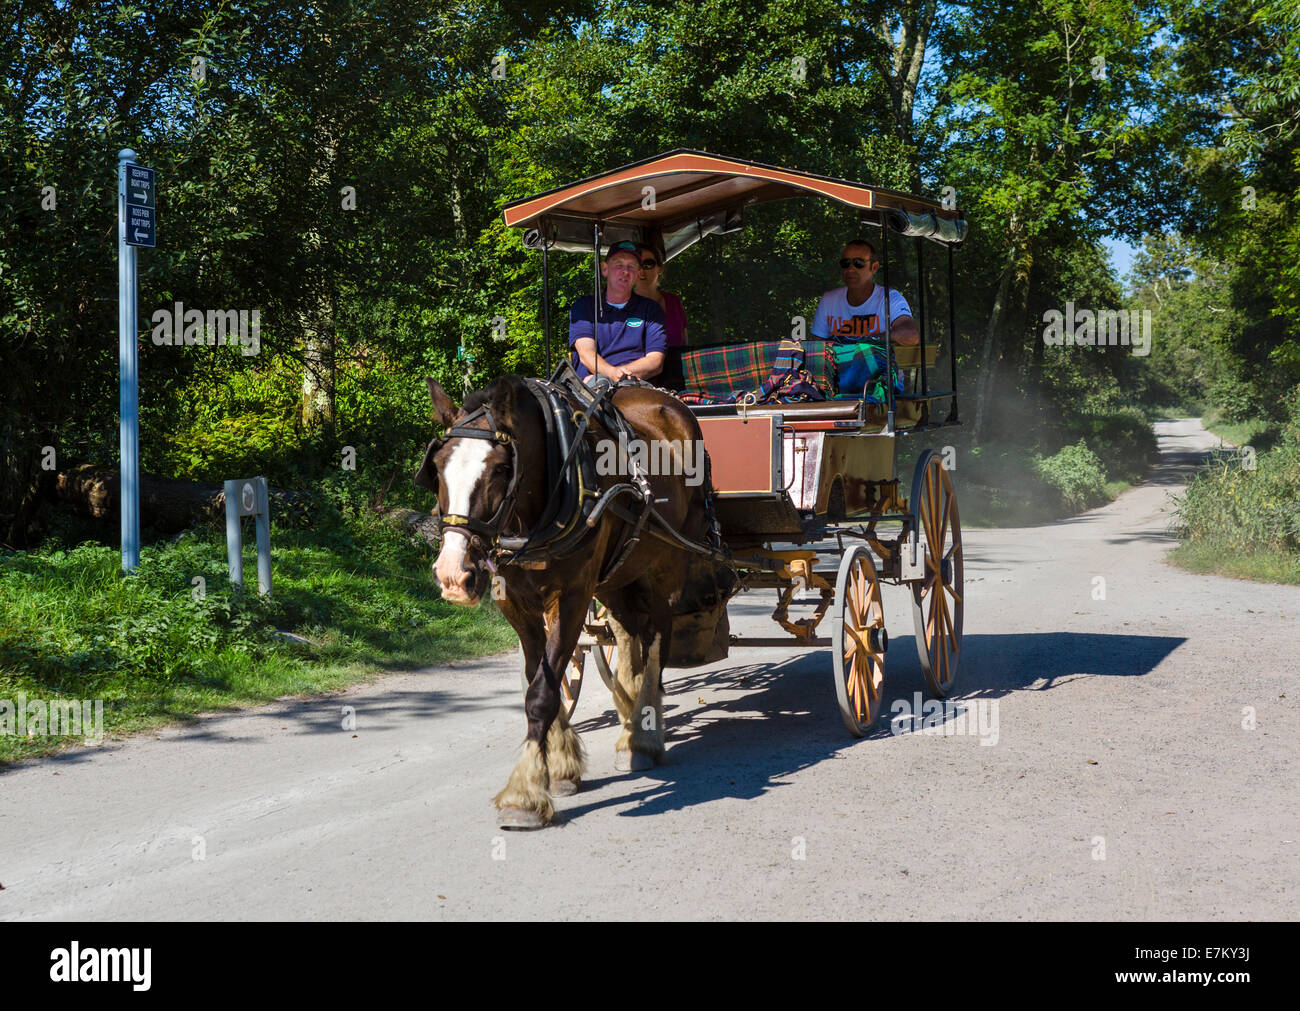 Ireland horse carriage stock photos ireland horse for Car carriage